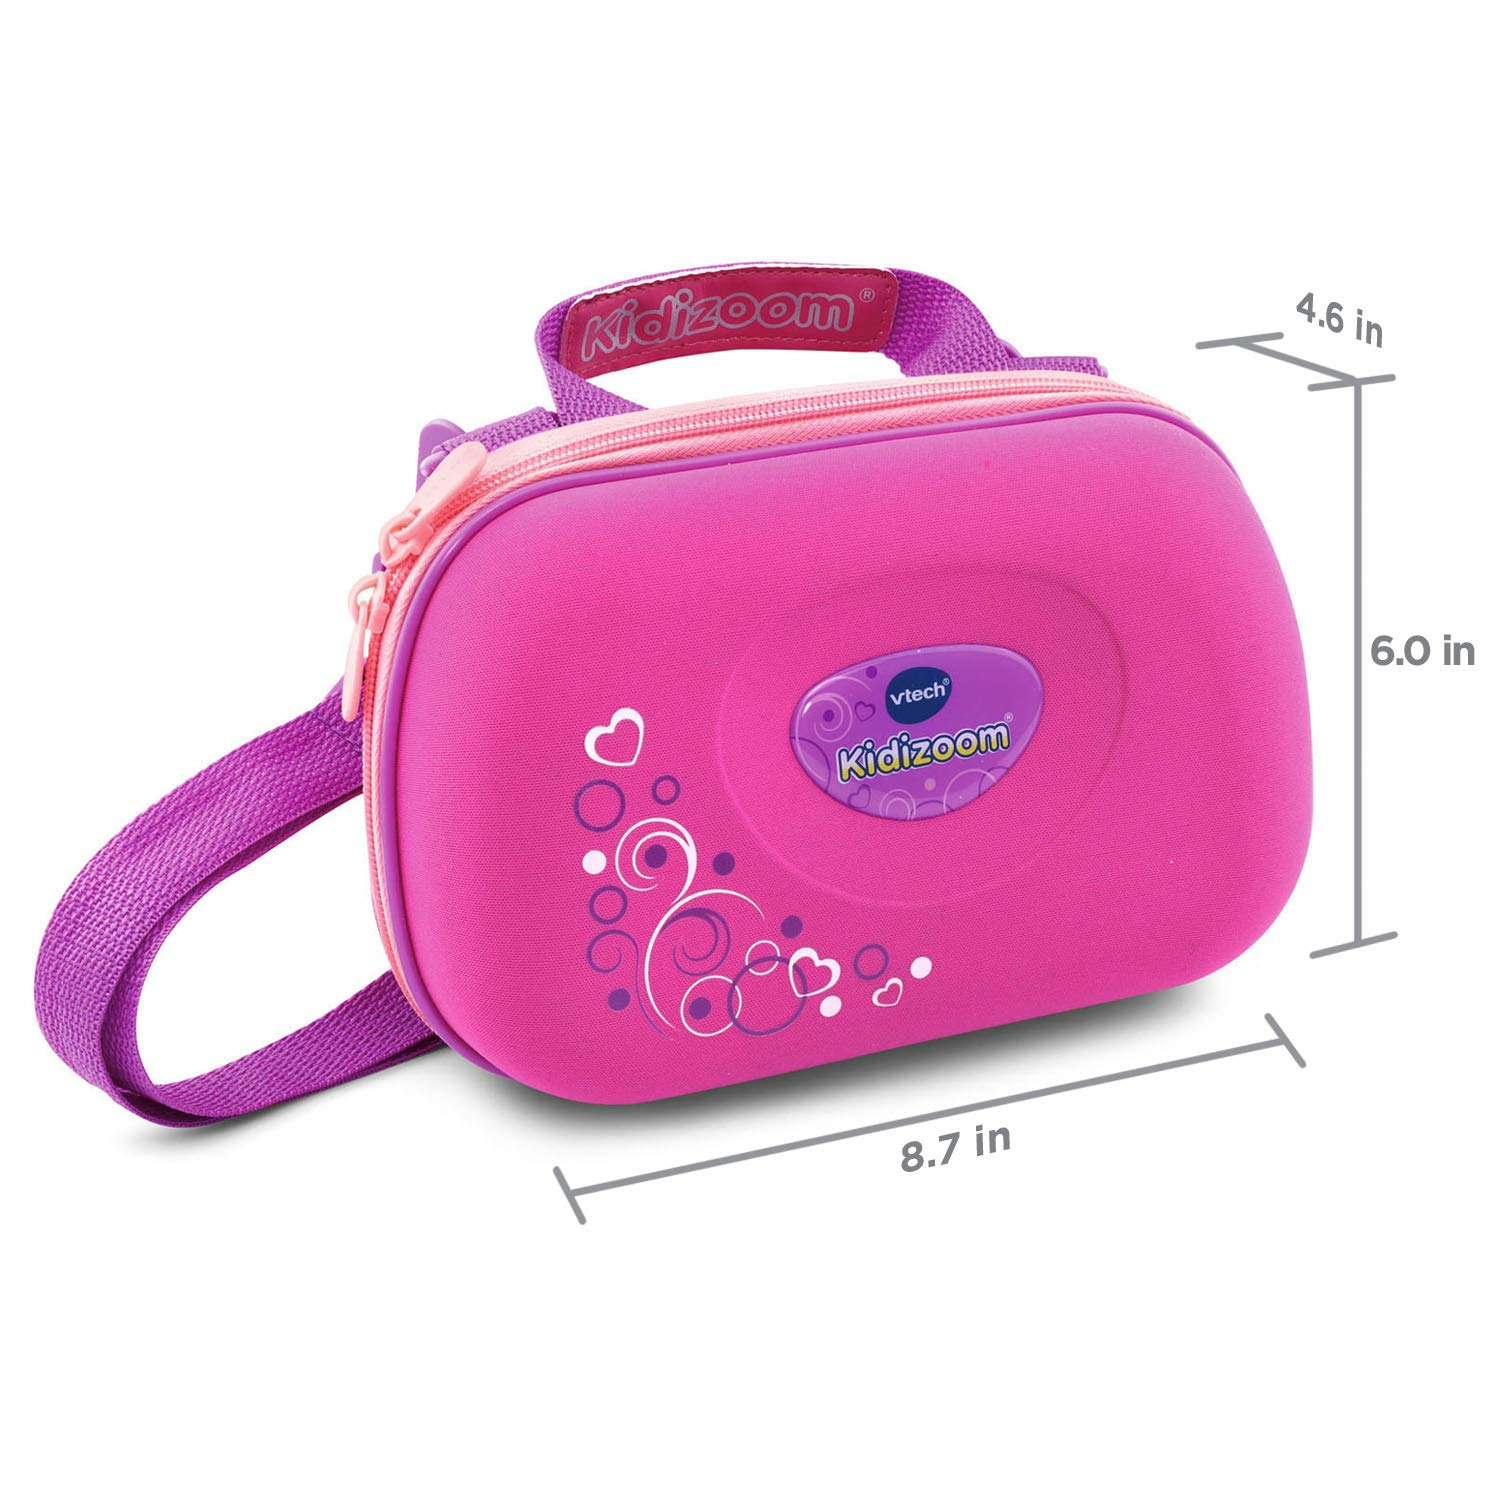 VTech Kidizoom Carrying Case, Pink by VTech (Image #4)